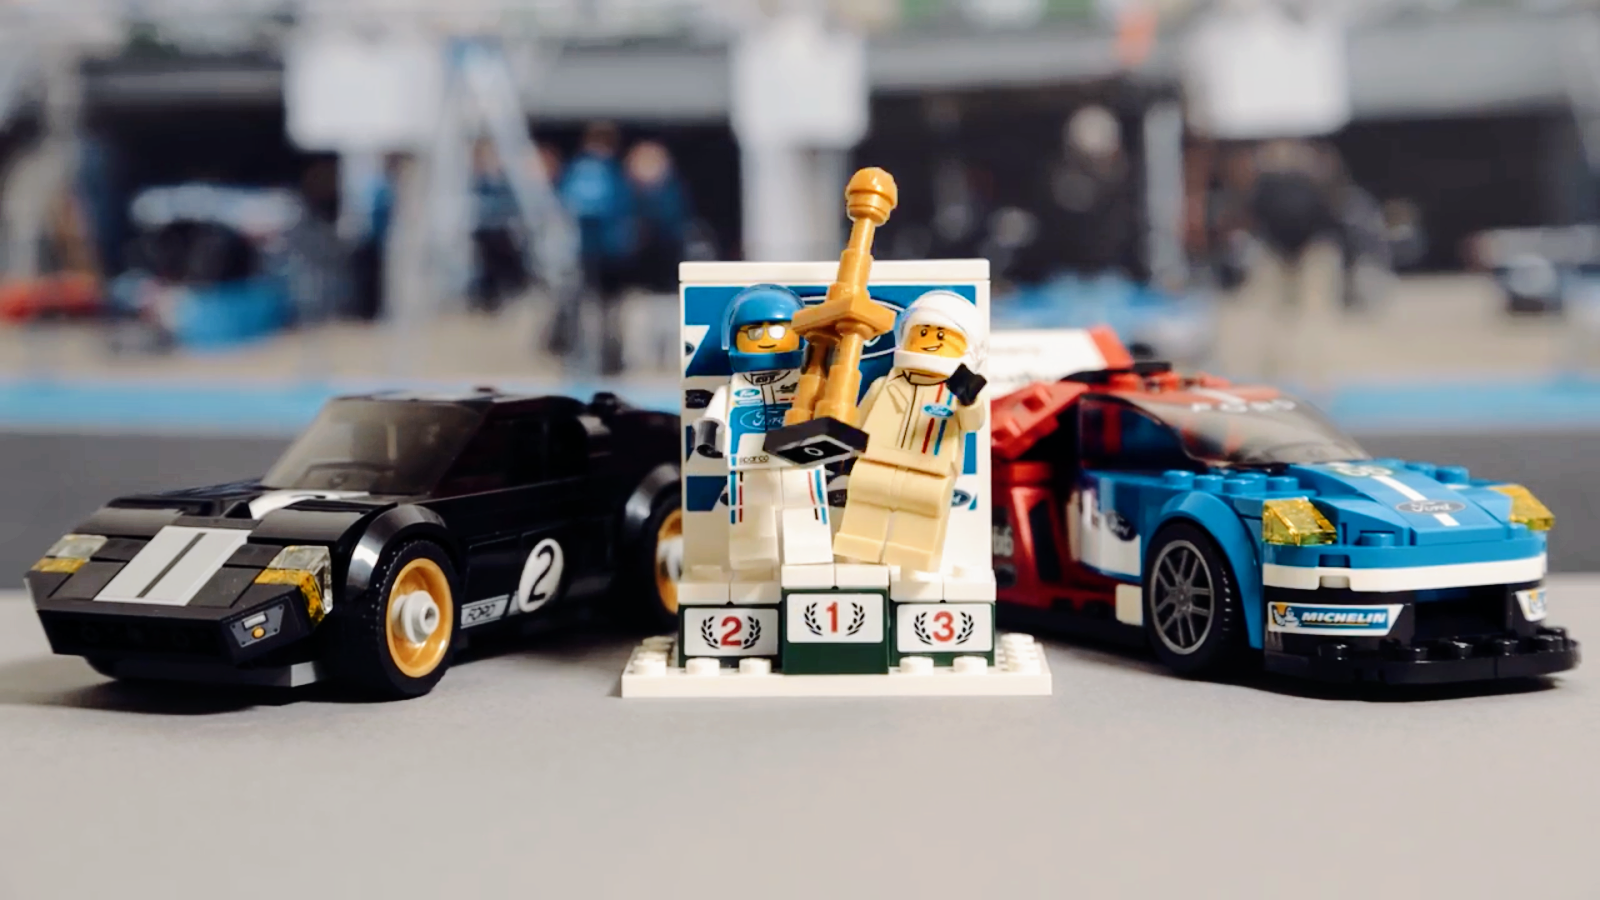 Designed to Inspire Tomorrow's Racing Drivers, Engineers and Designers – Ford's Le Mans Victories in LEGO® Bricks